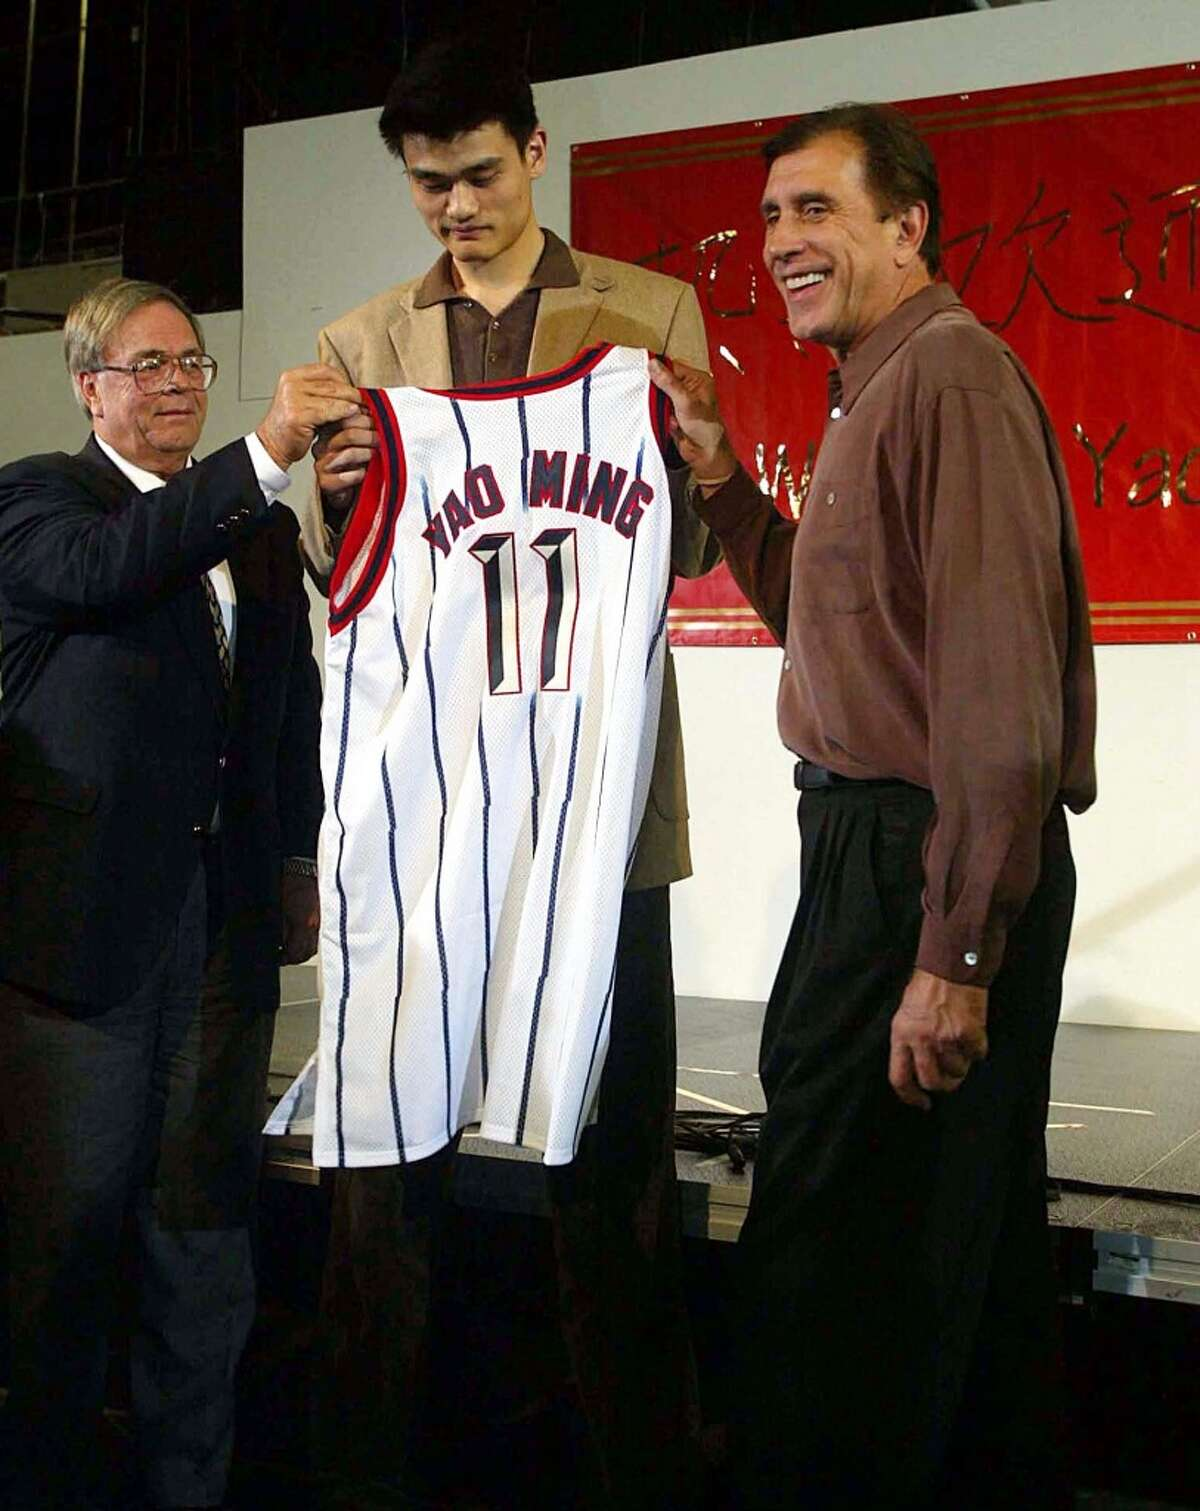 David Stern was a main player in getting foreign basketball professionals to come play in the NBA. Notable names include (not limited to) Akeem Olajuwon, Yao Ming, Dirk Nowitzki, Jonas Valanciunas, Ricky Rubio and Andrei Kirilenko.